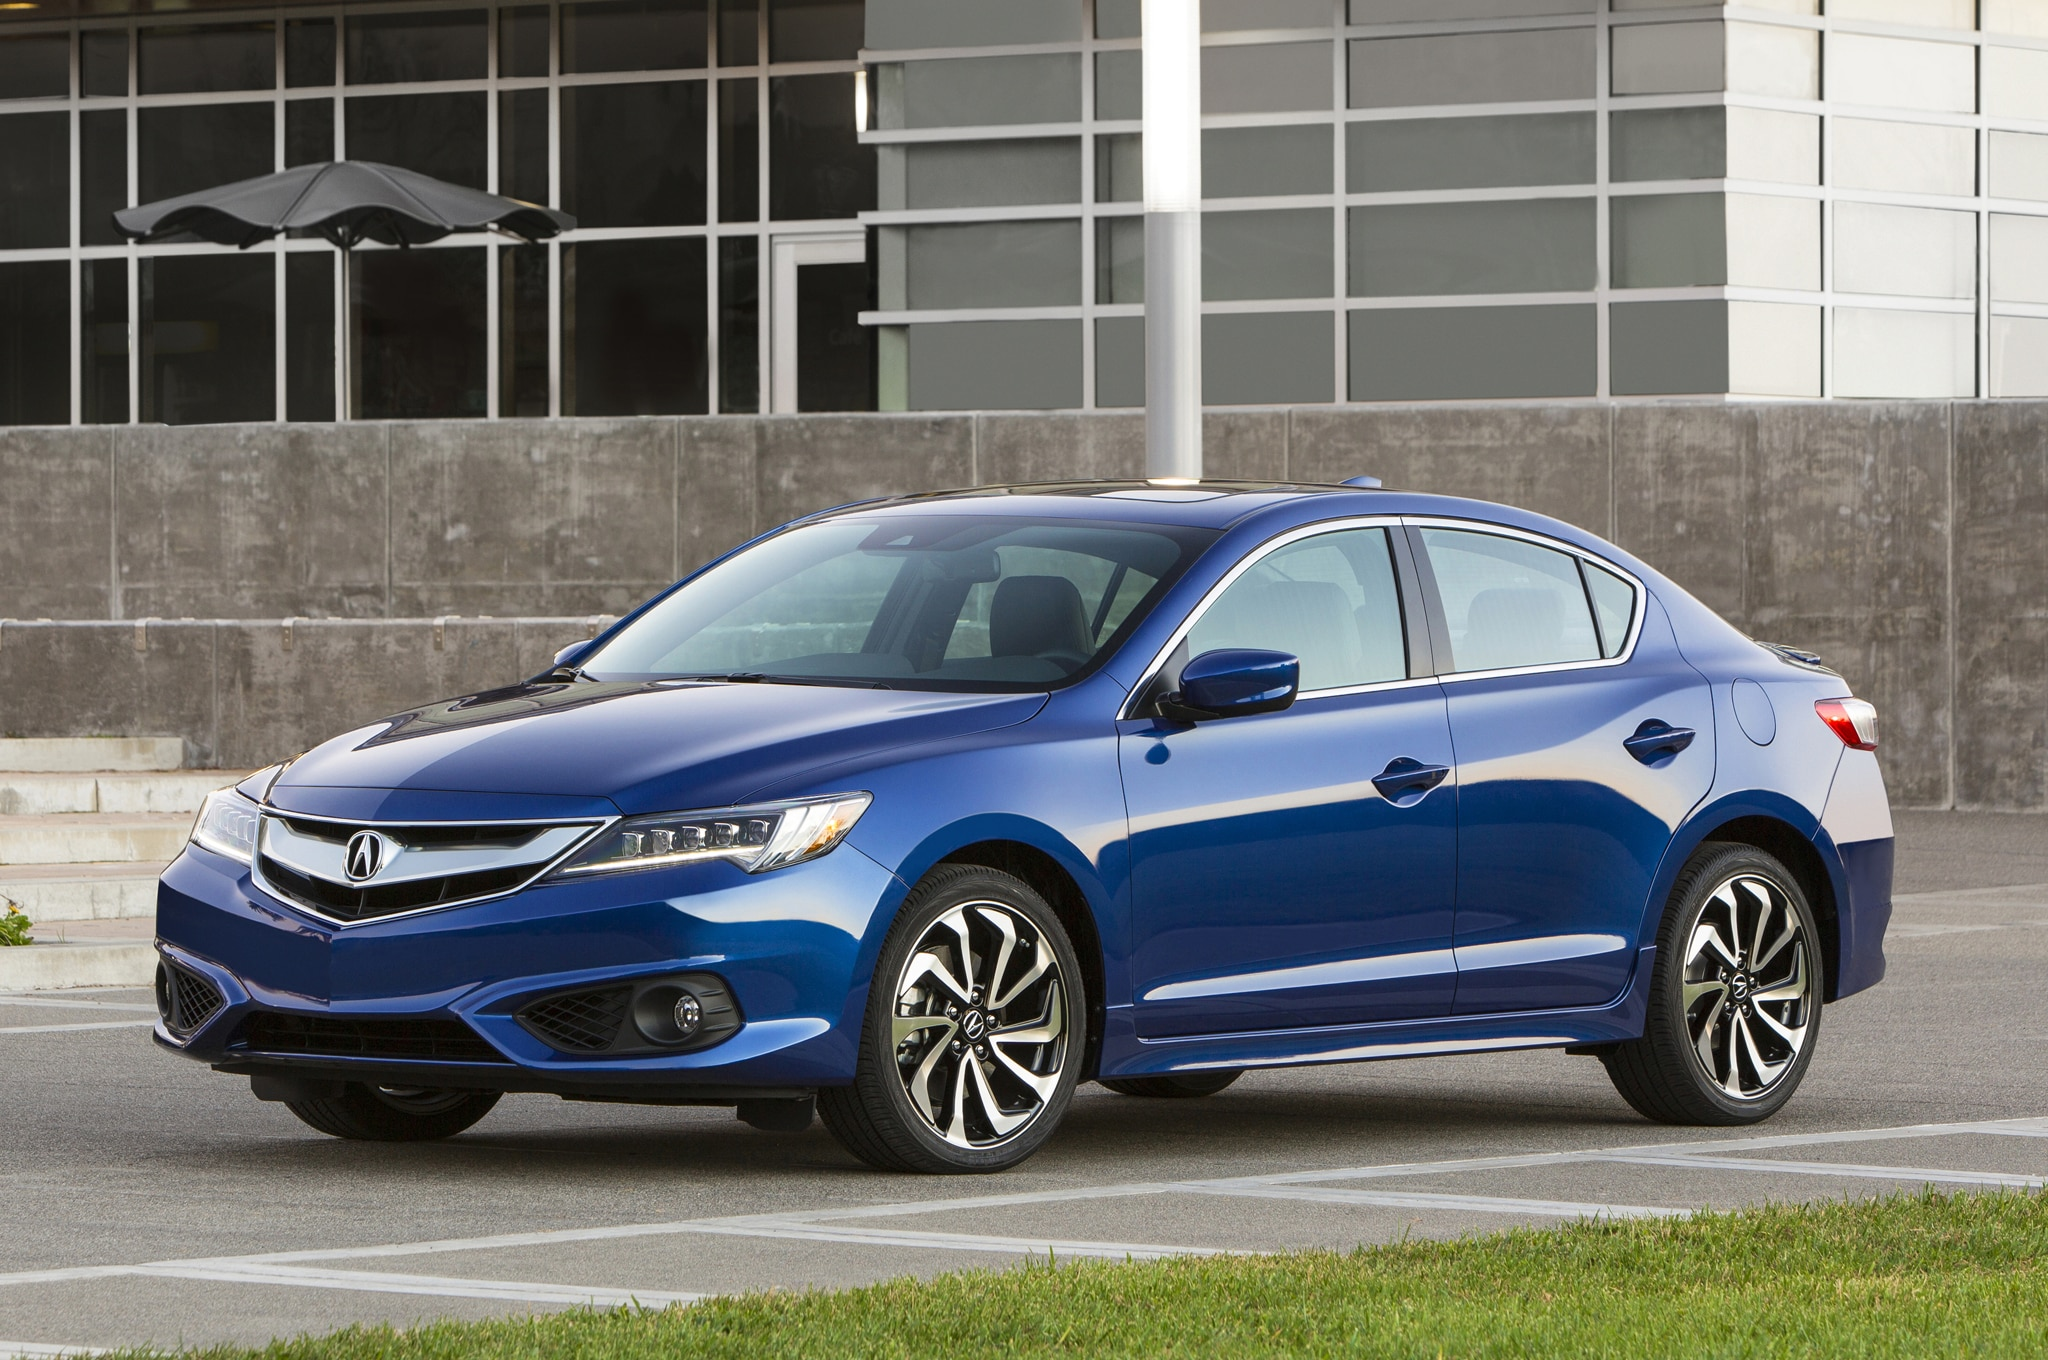 2016 Acura Ilx Reviews | 2017 - 2018 Best Cars Reviews